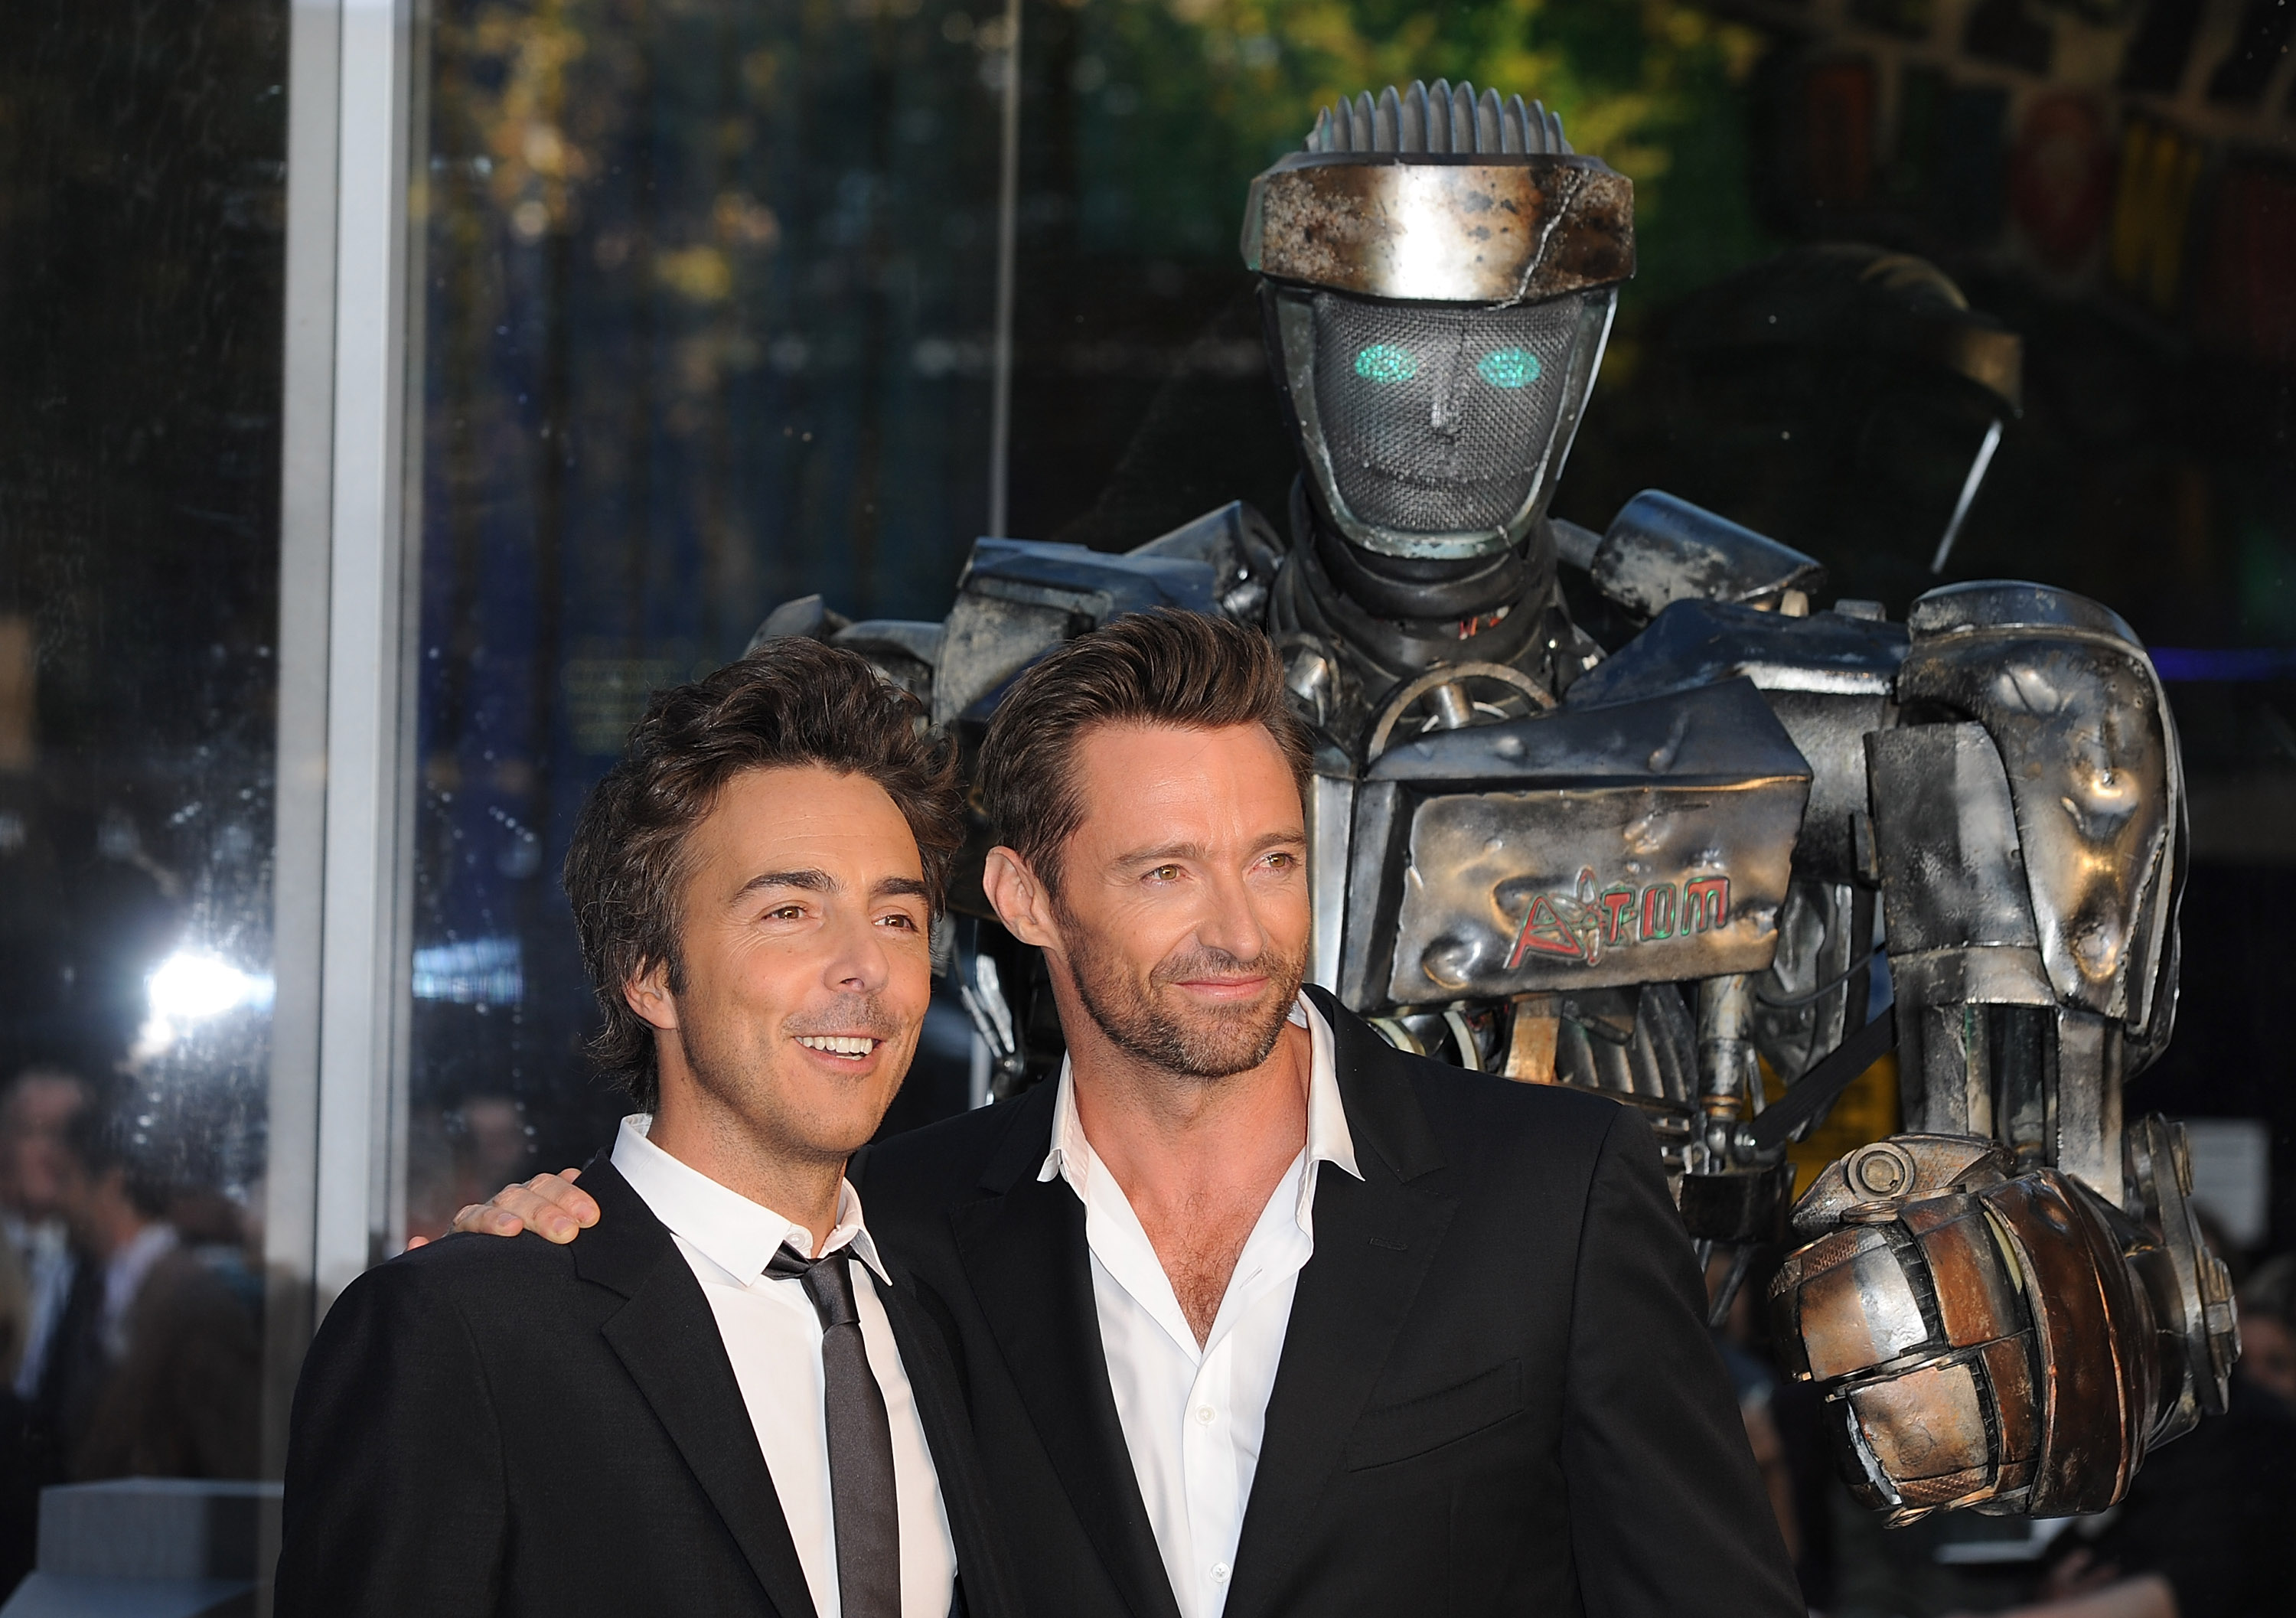 Director Shawn Levy (left) poses with Hugh Jackman and the robot boxer Atom from another film he directed,